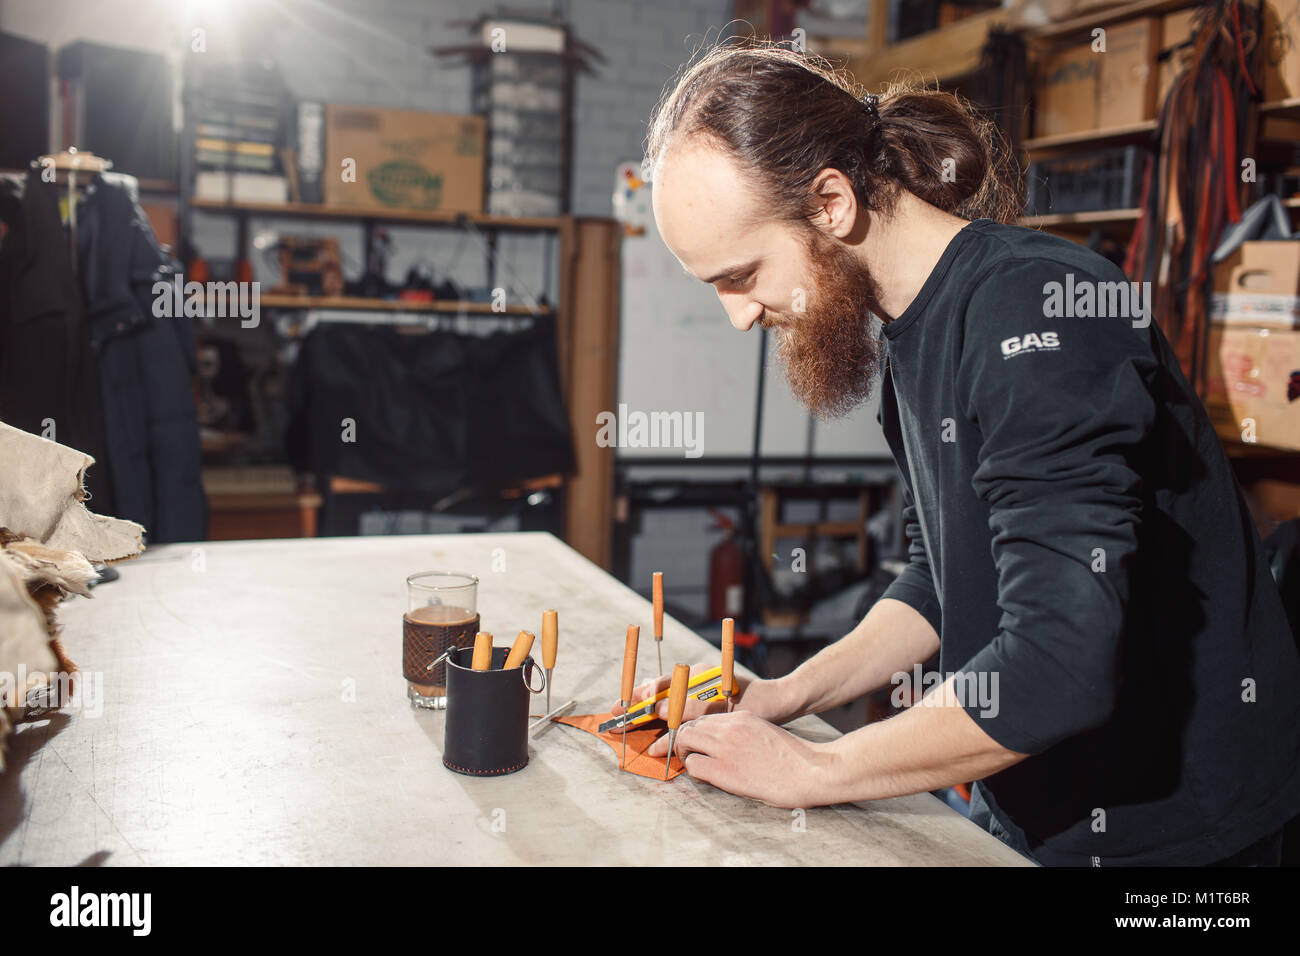 Working process in the leather workshop. Tanner in old tannery. - Stock Image